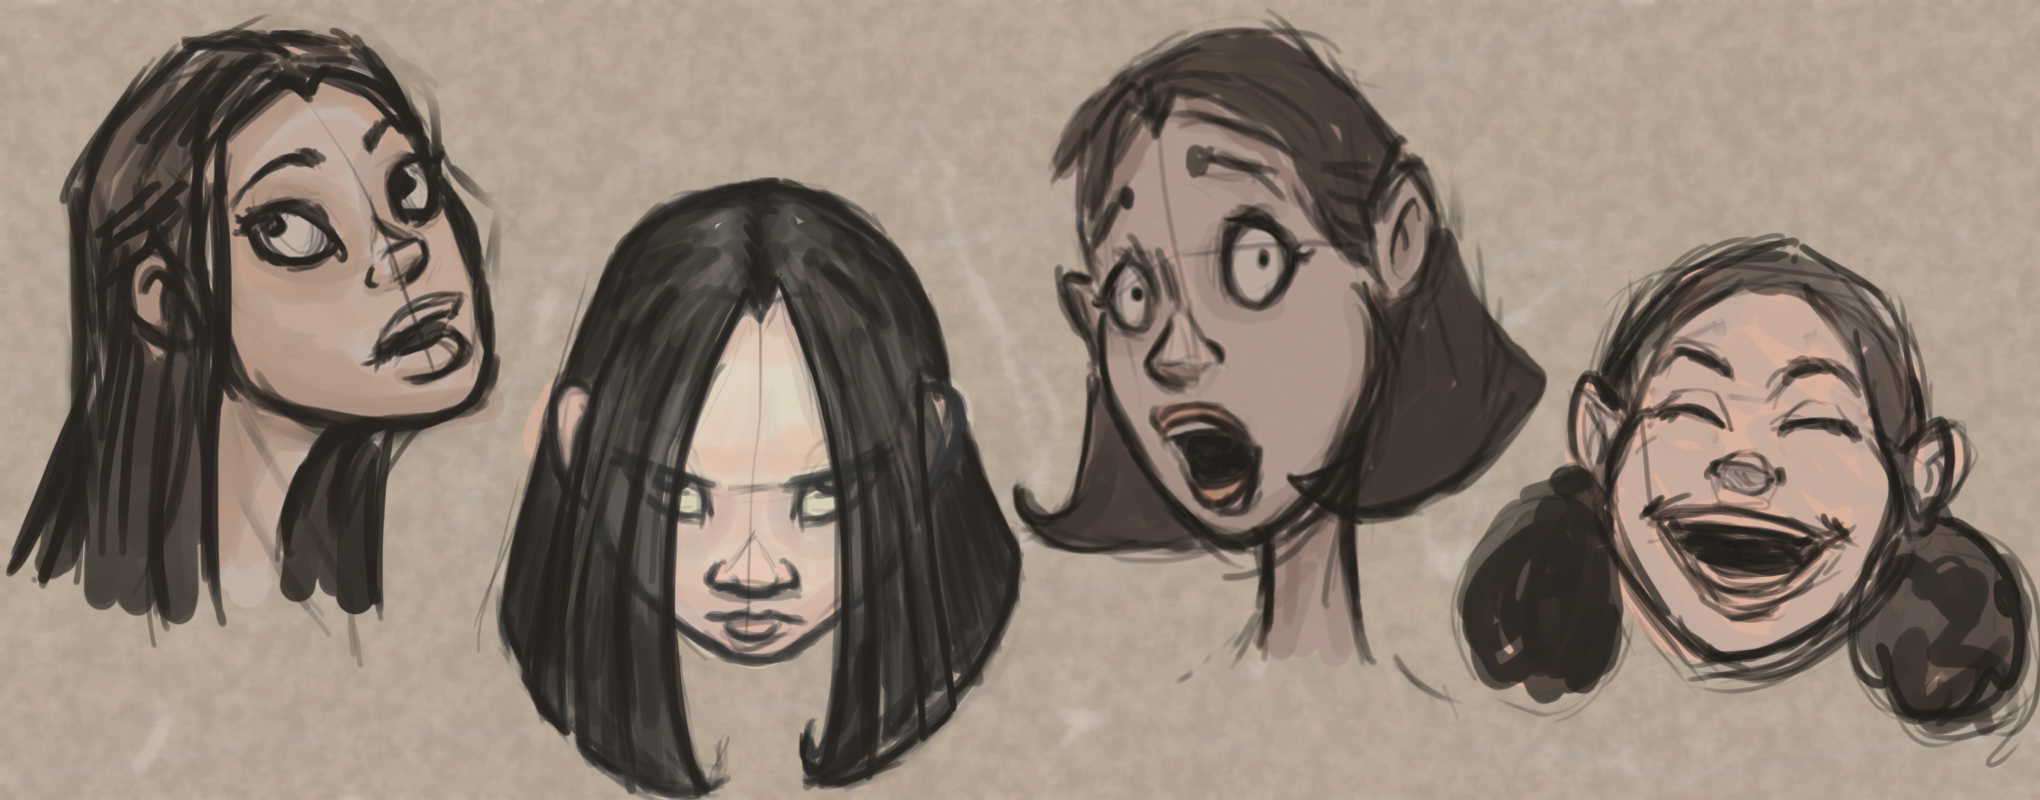 2040x800 Female Facial Expressions Drawing Exercise Sean Gallo Designs